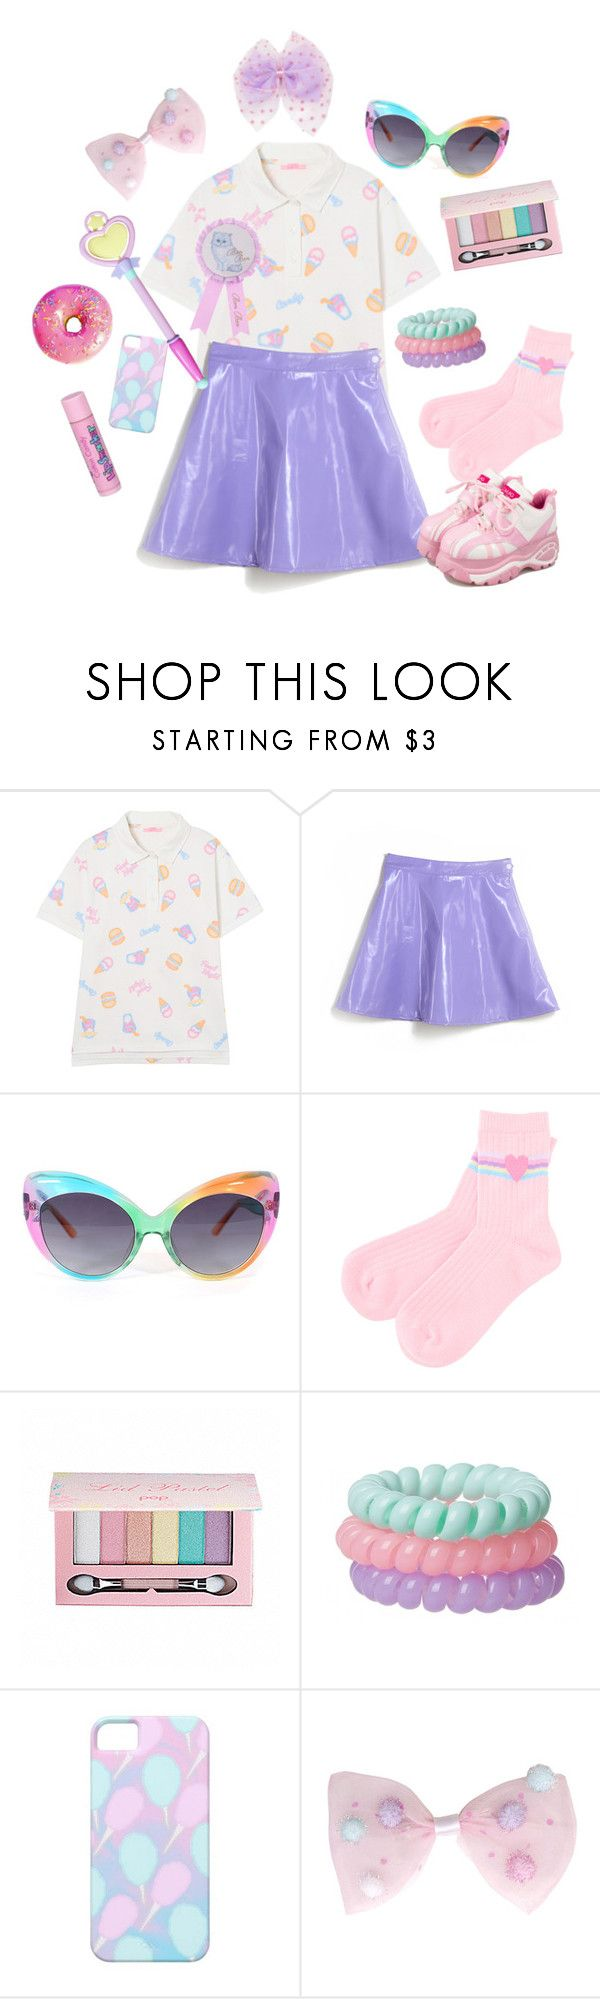 """Party kei~☆"" by sweetpasteldream ❤ liked on Polyvore featuring UNIF, Pop Beauty and Cotton Candy"